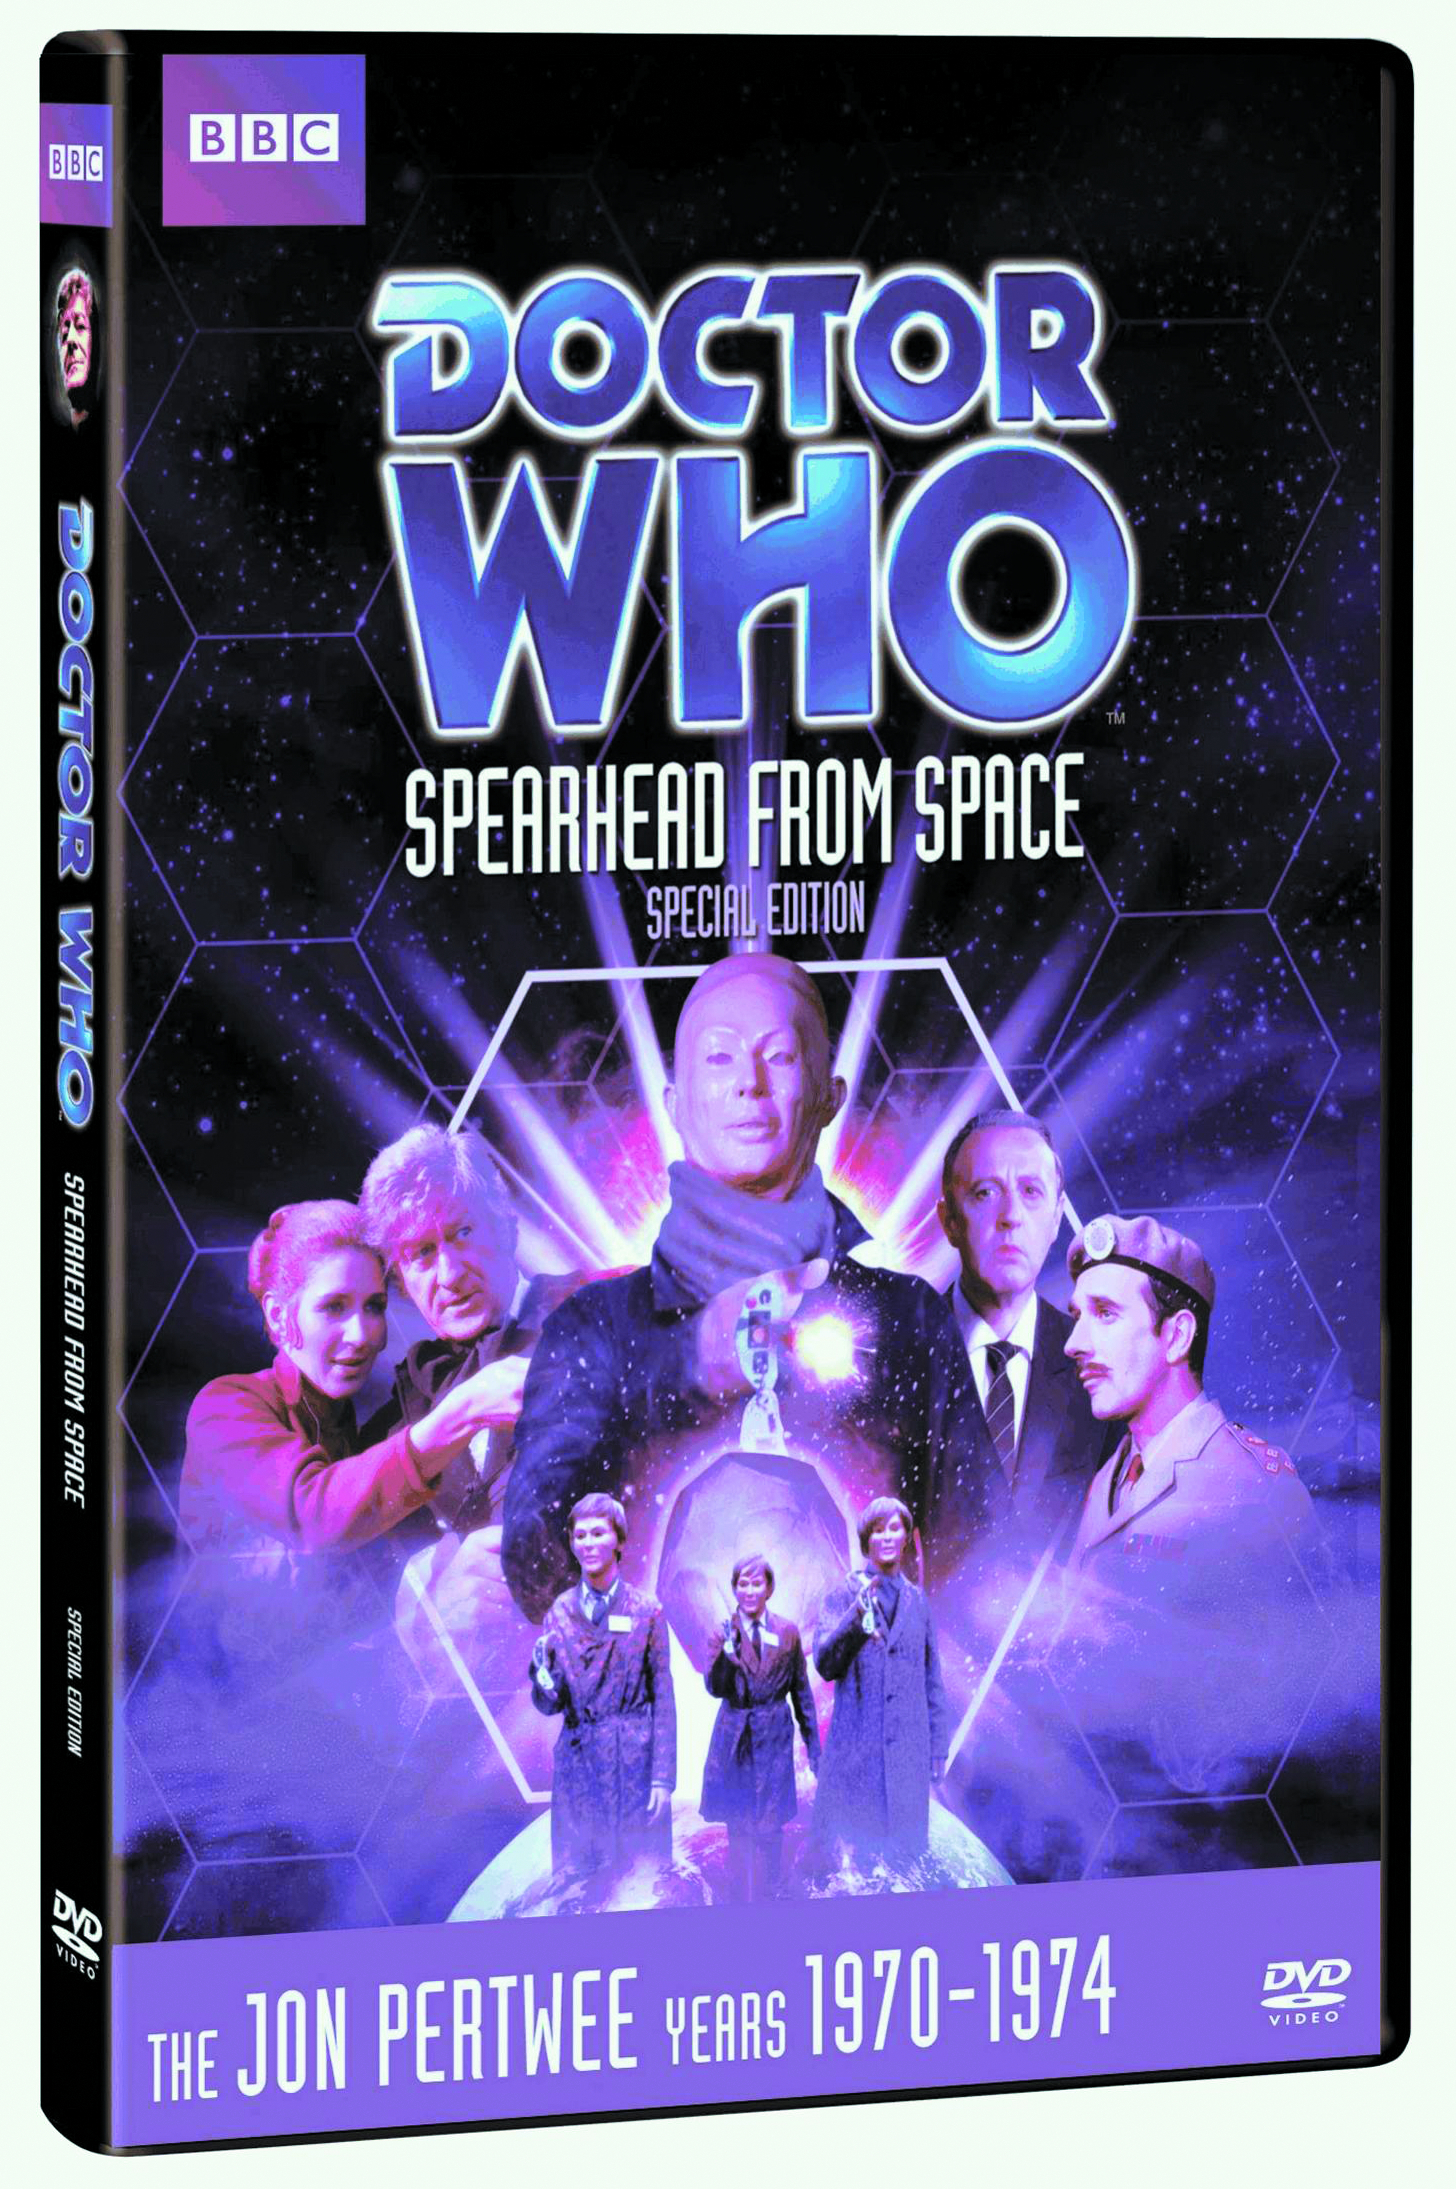 DOCTOR WHO SPEARHEAD FROM SPACE DVD